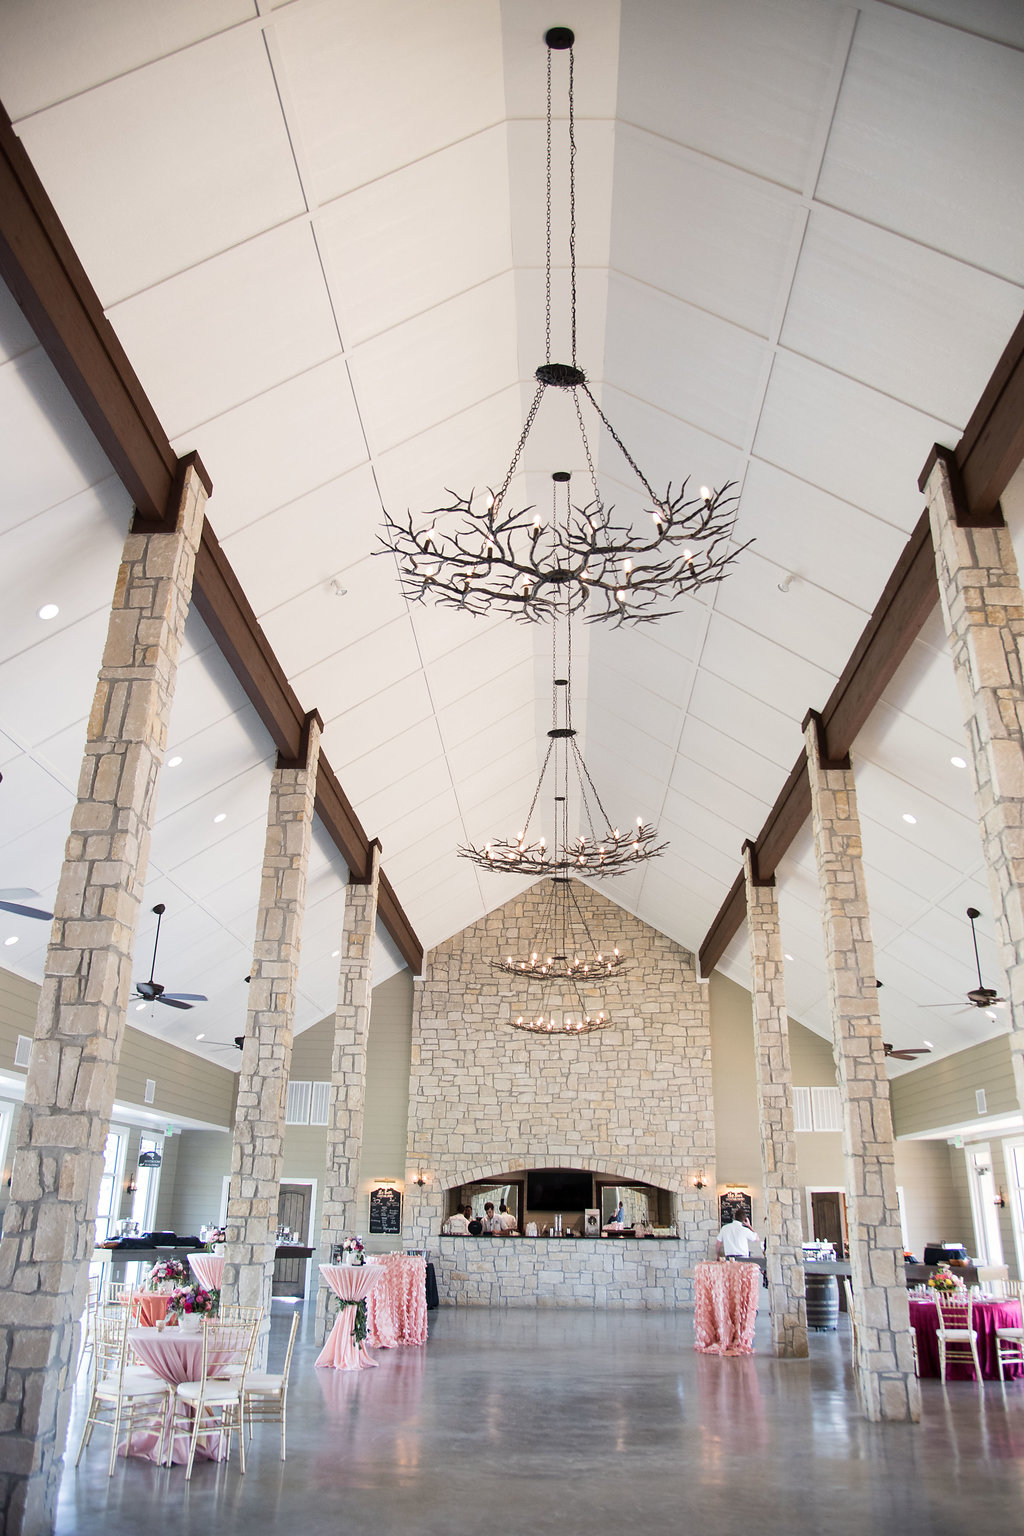 Inn at quarry ridge open house planned by epoch co in college station spring wedding inspiration